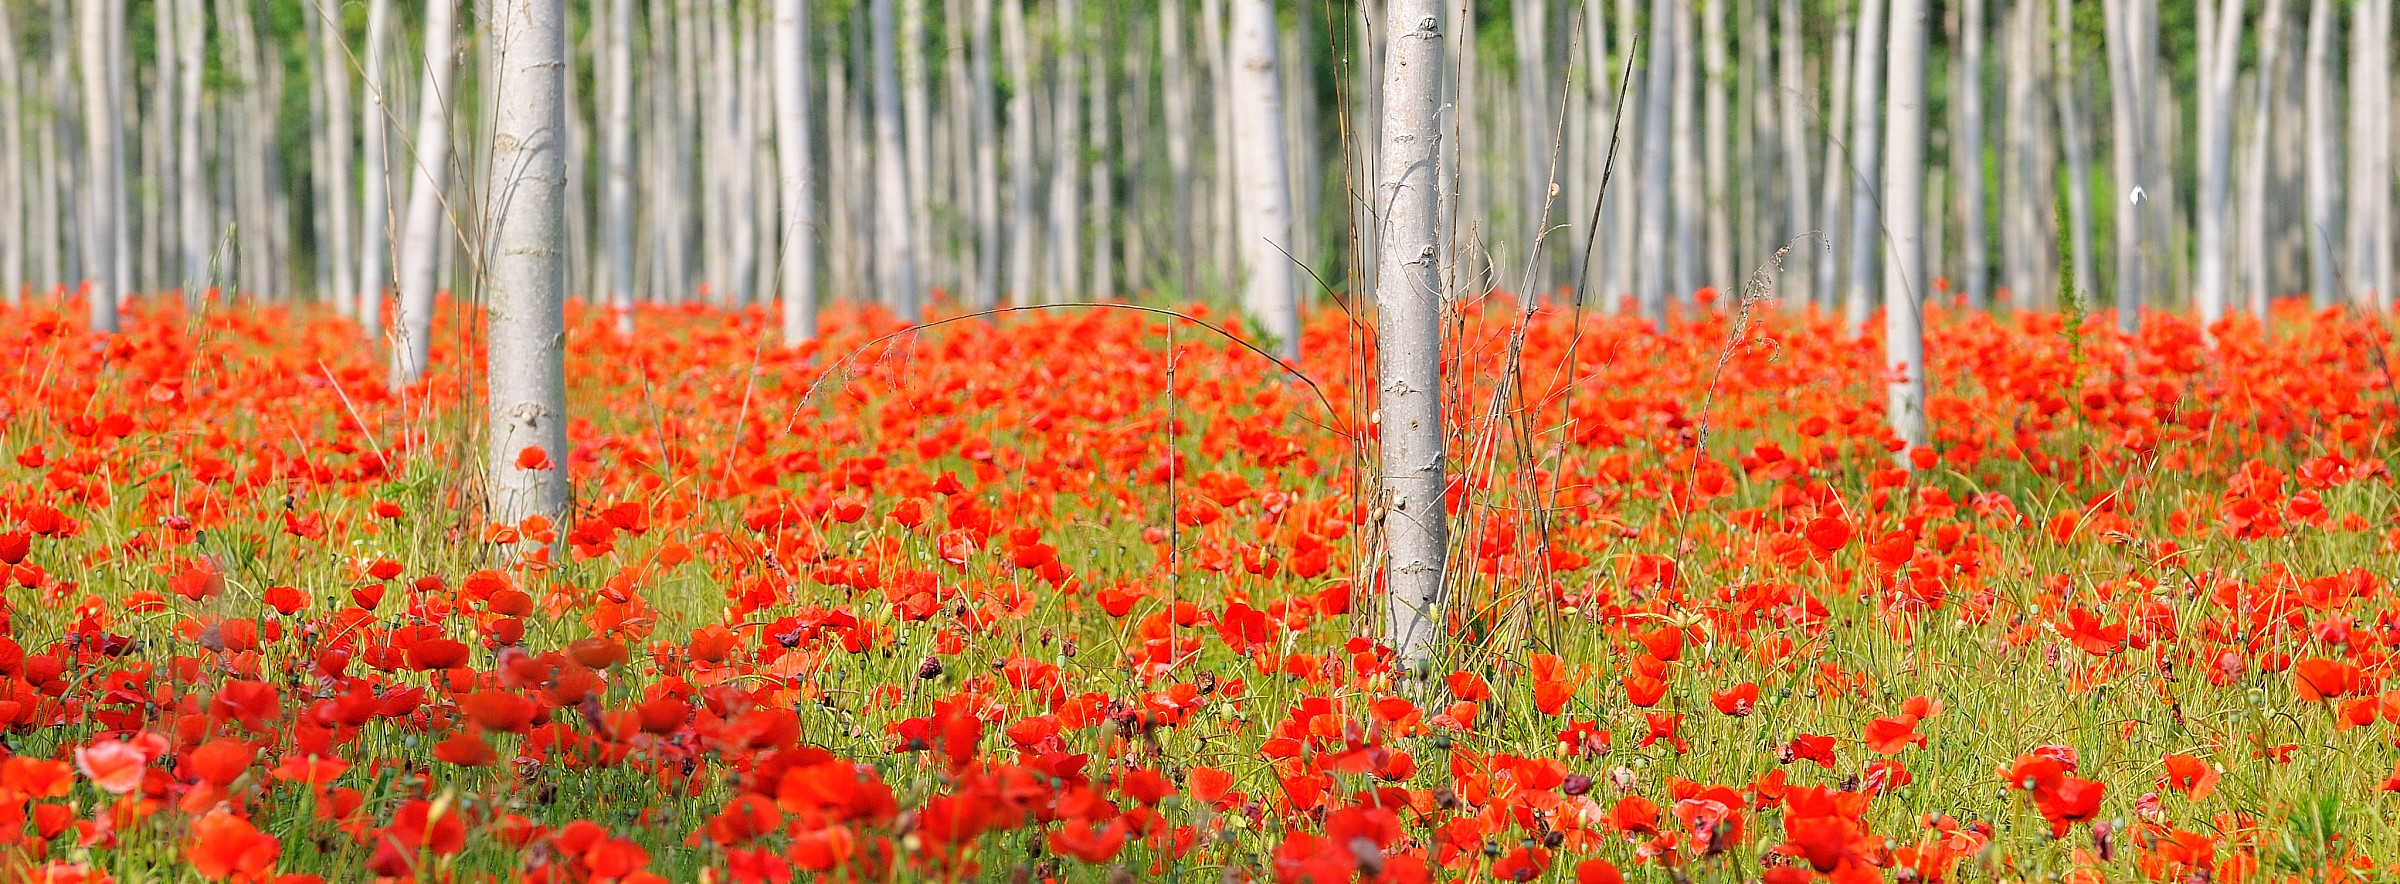 Poplars and Poppies...